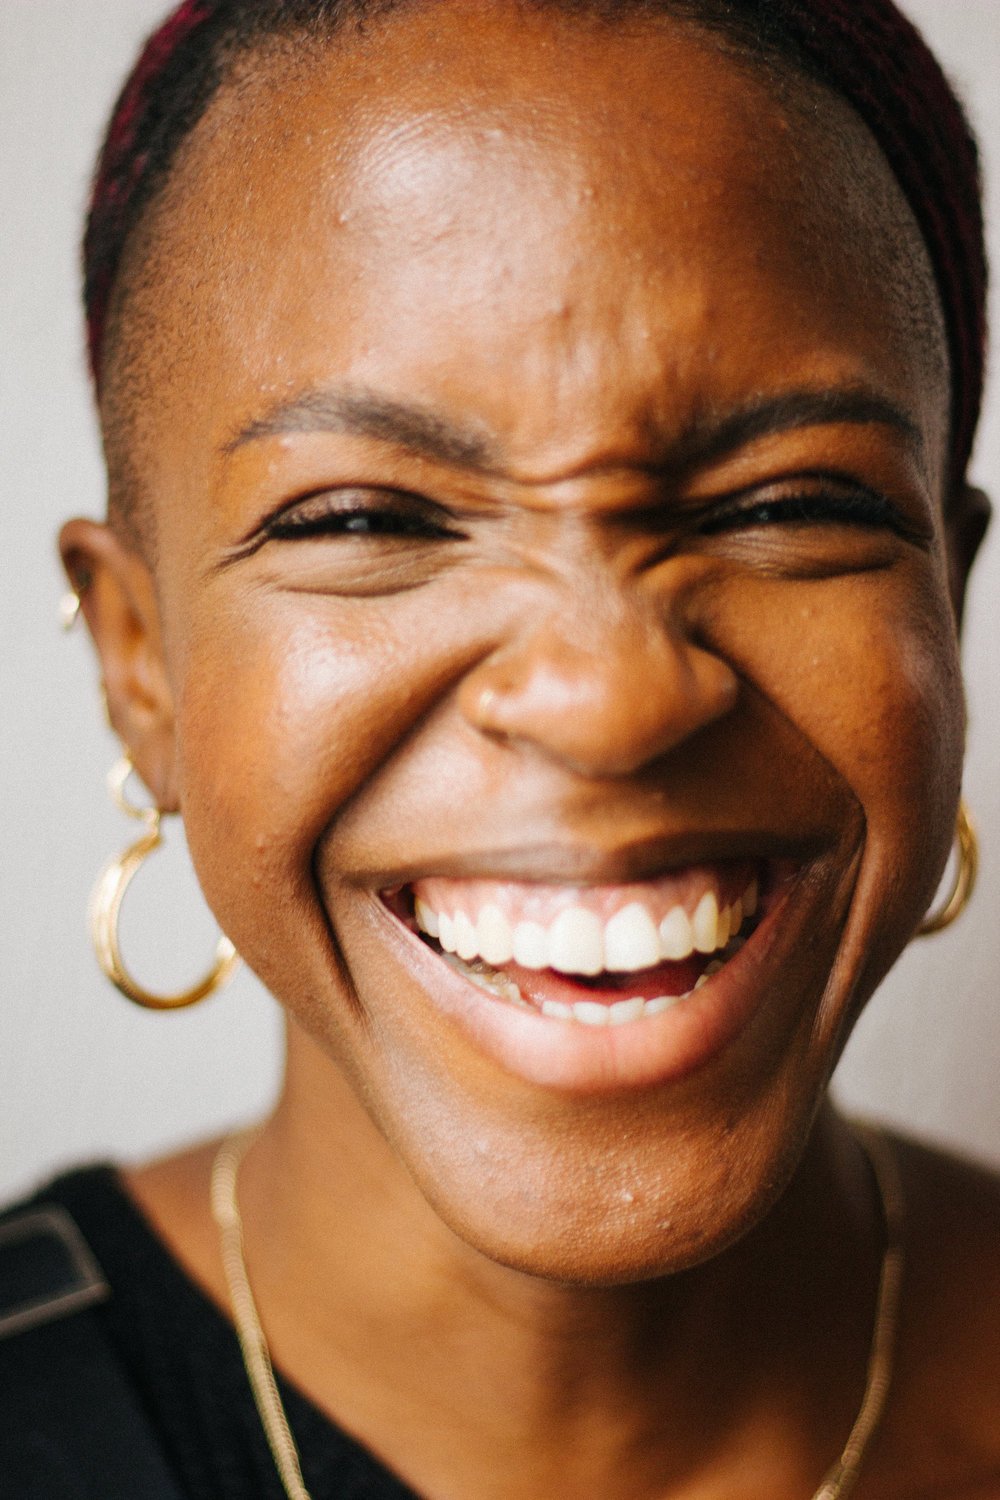 A black woman laughing.